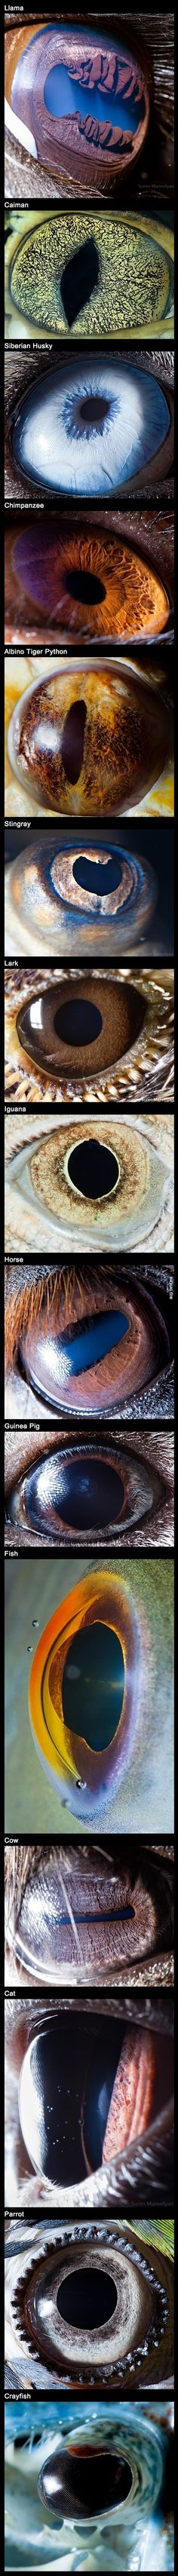 animals' eyes. Some have Synechia (broken iris; where the coloured part is broken) and it's unnatural; others have small pupils, others large.